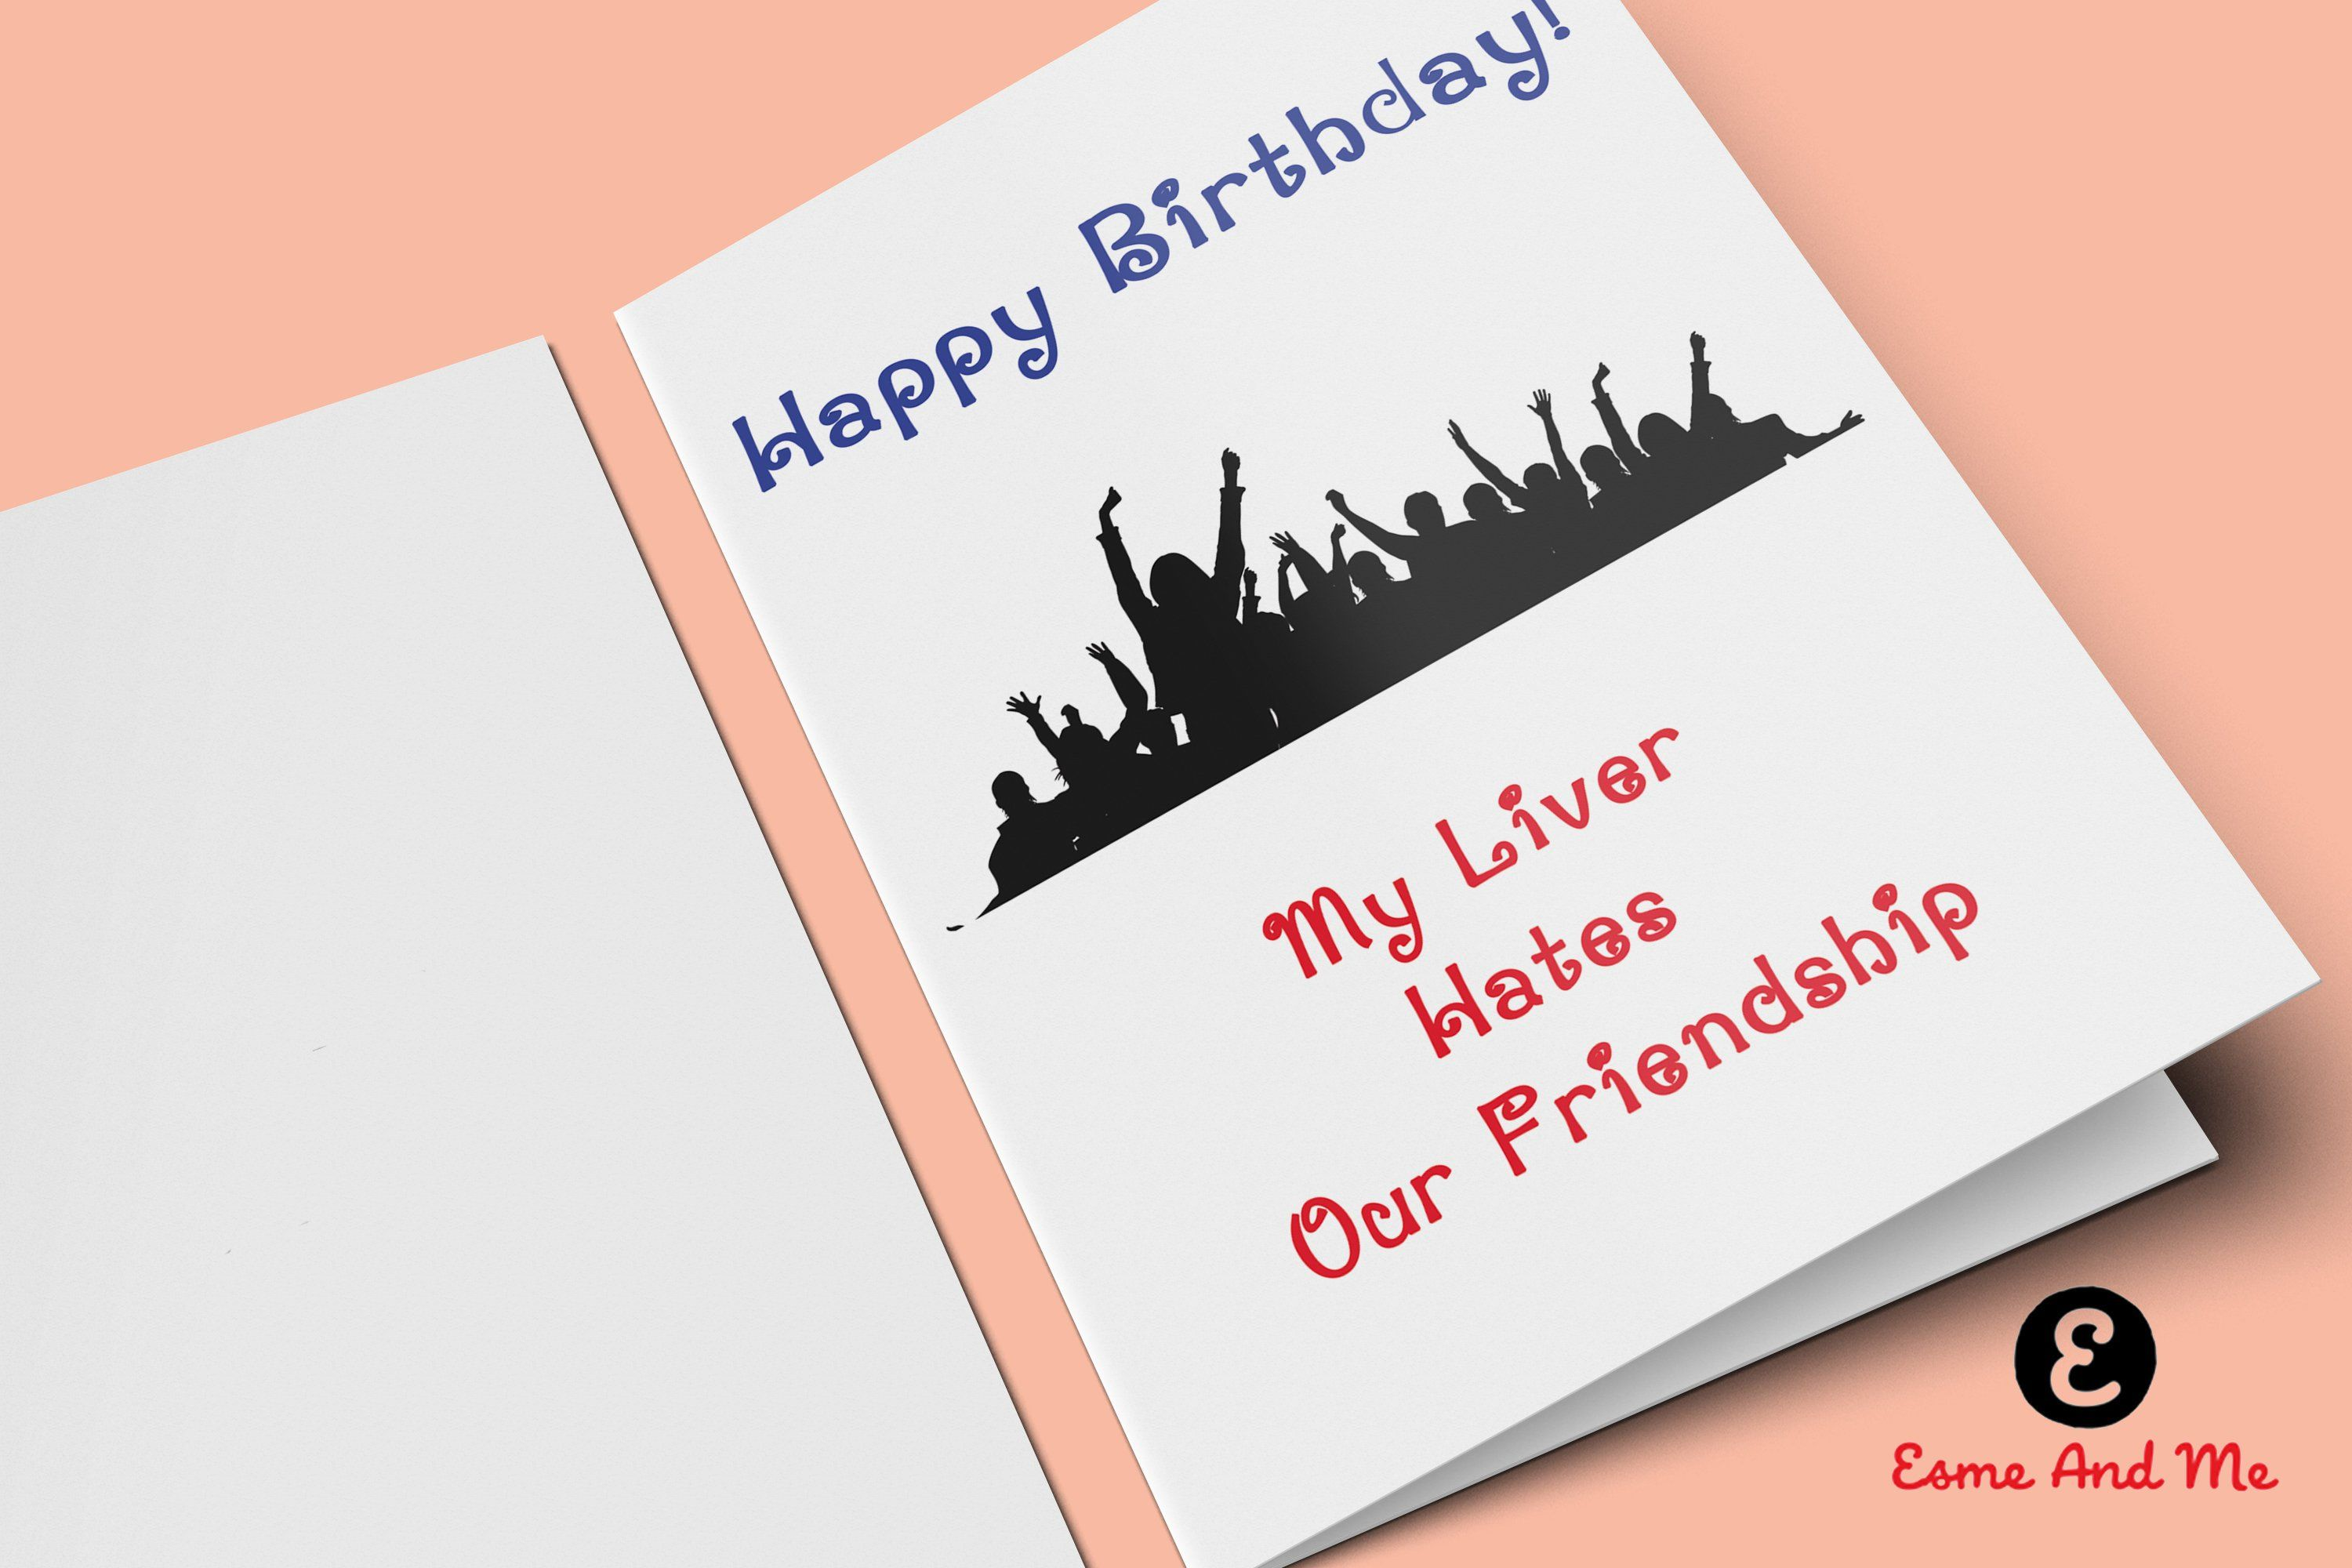 Happy Birthday My Live Hates Our Friendship Funny Card Rude Cheeky Greetings By EsmeandMeUK On Etsy